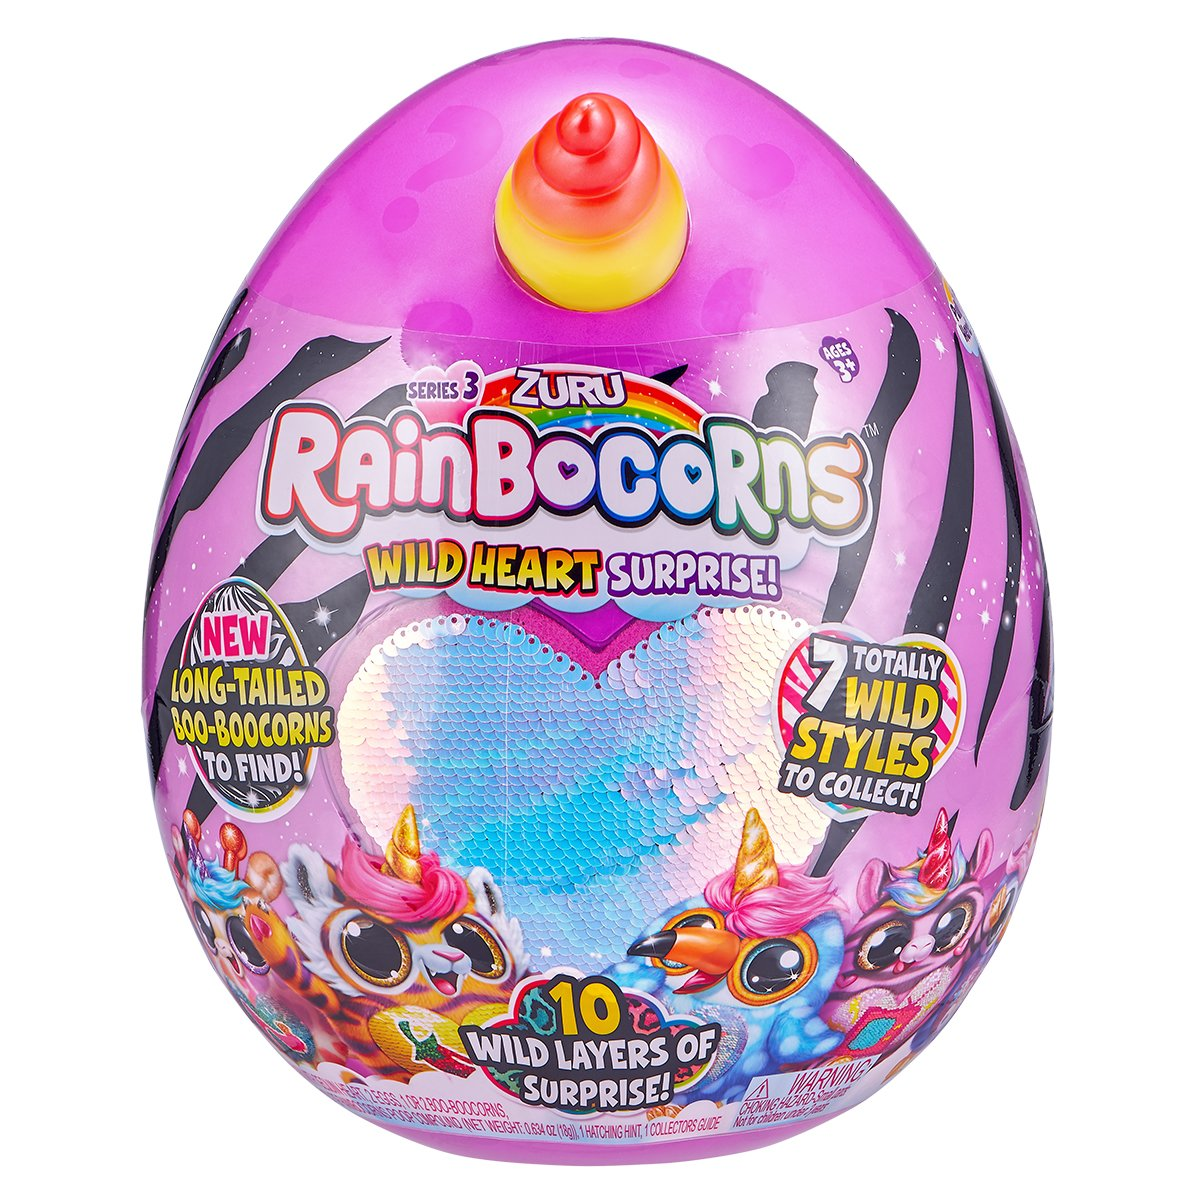 Jucarie de plus squishy Unicornul Curcubeu S3, Zuru Rainbocorns